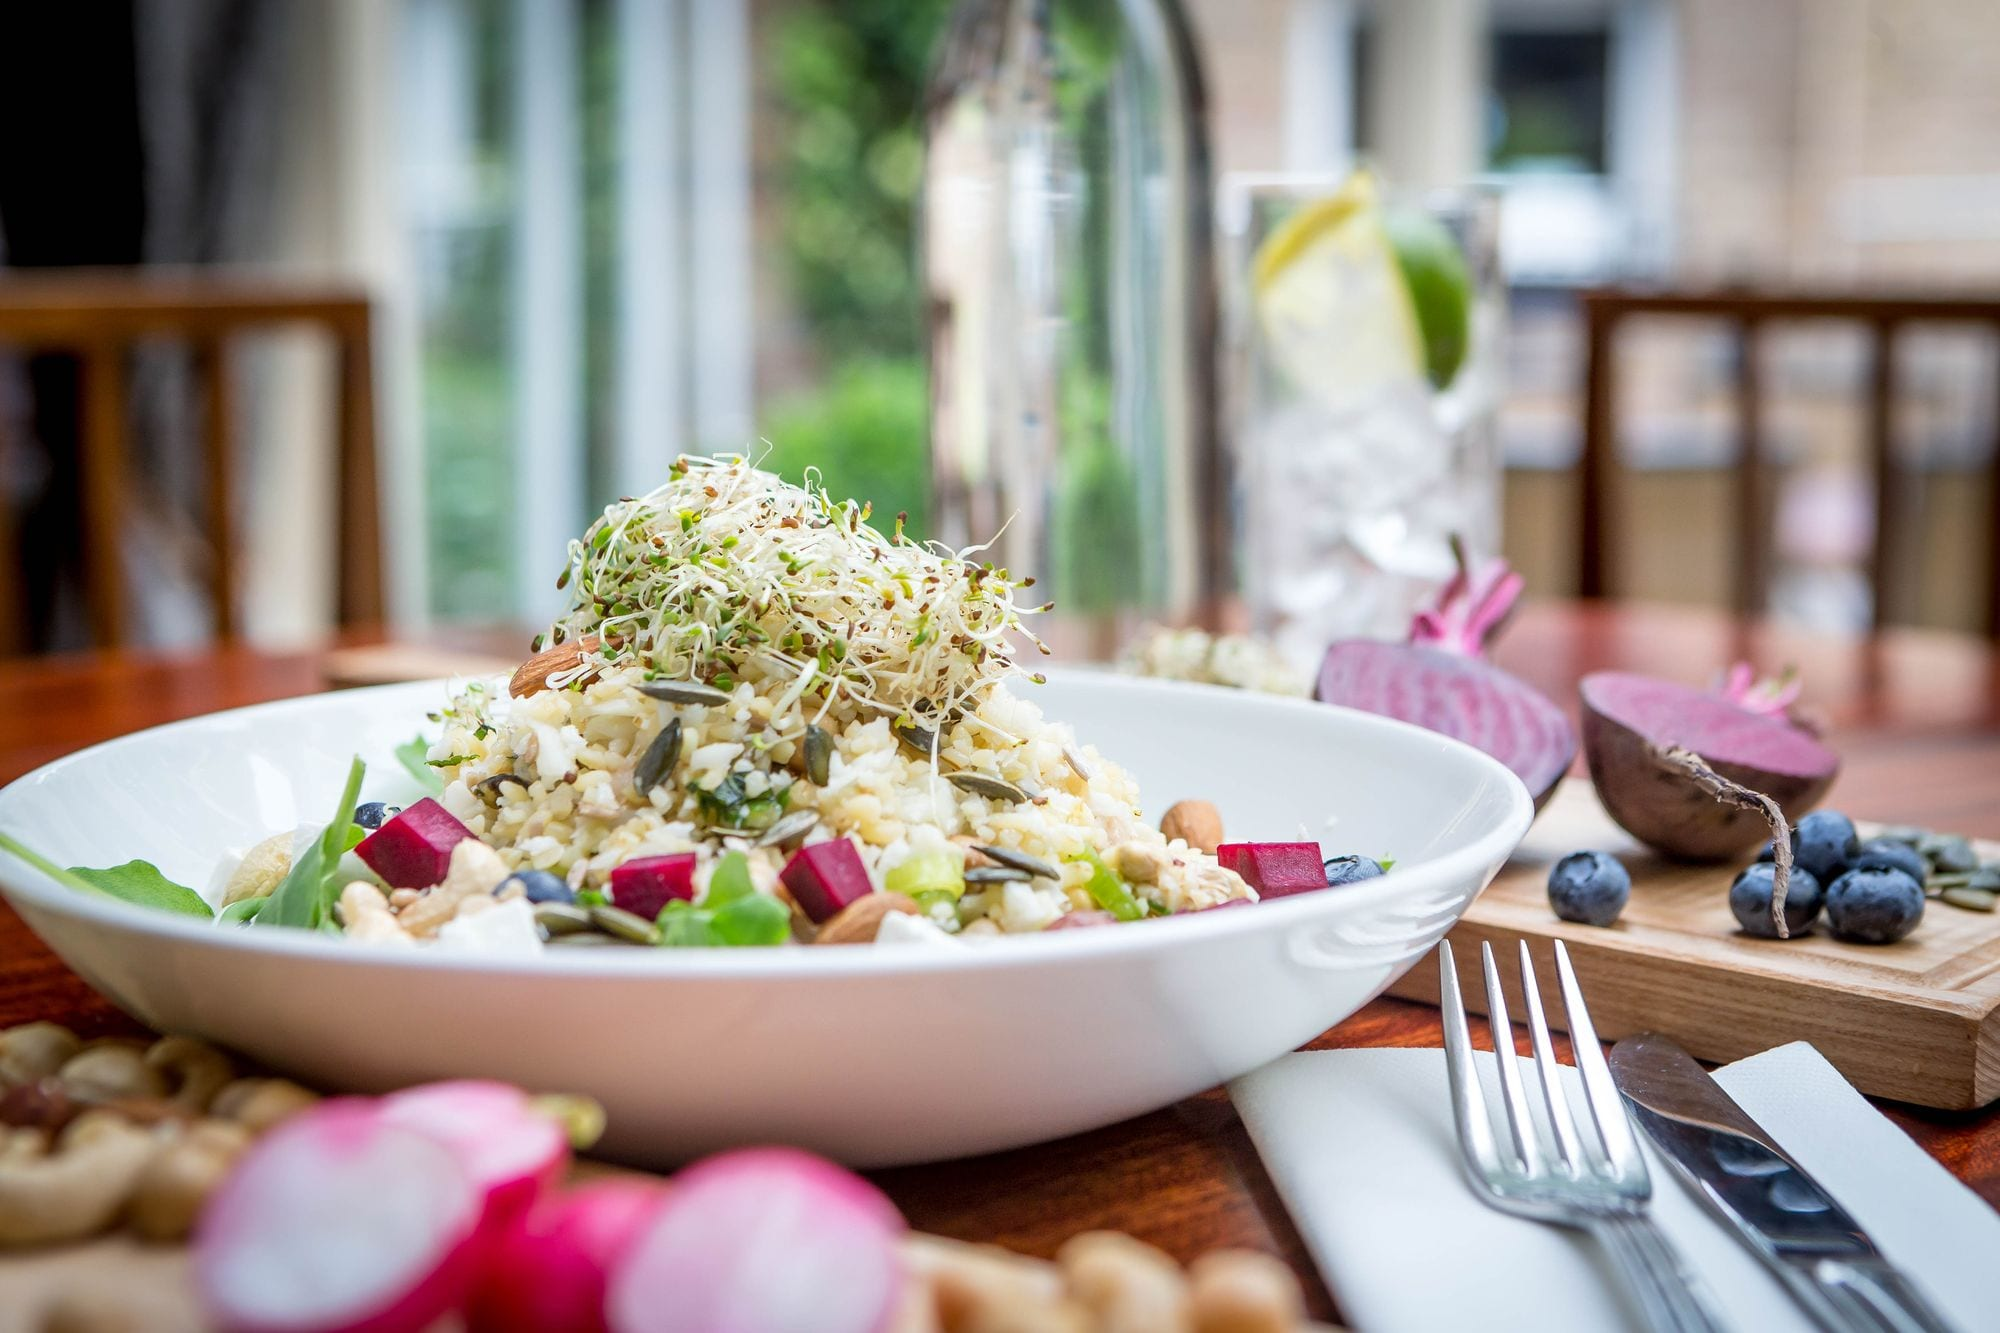 Superfood salad served at Clayton Hotel Liffey Valley